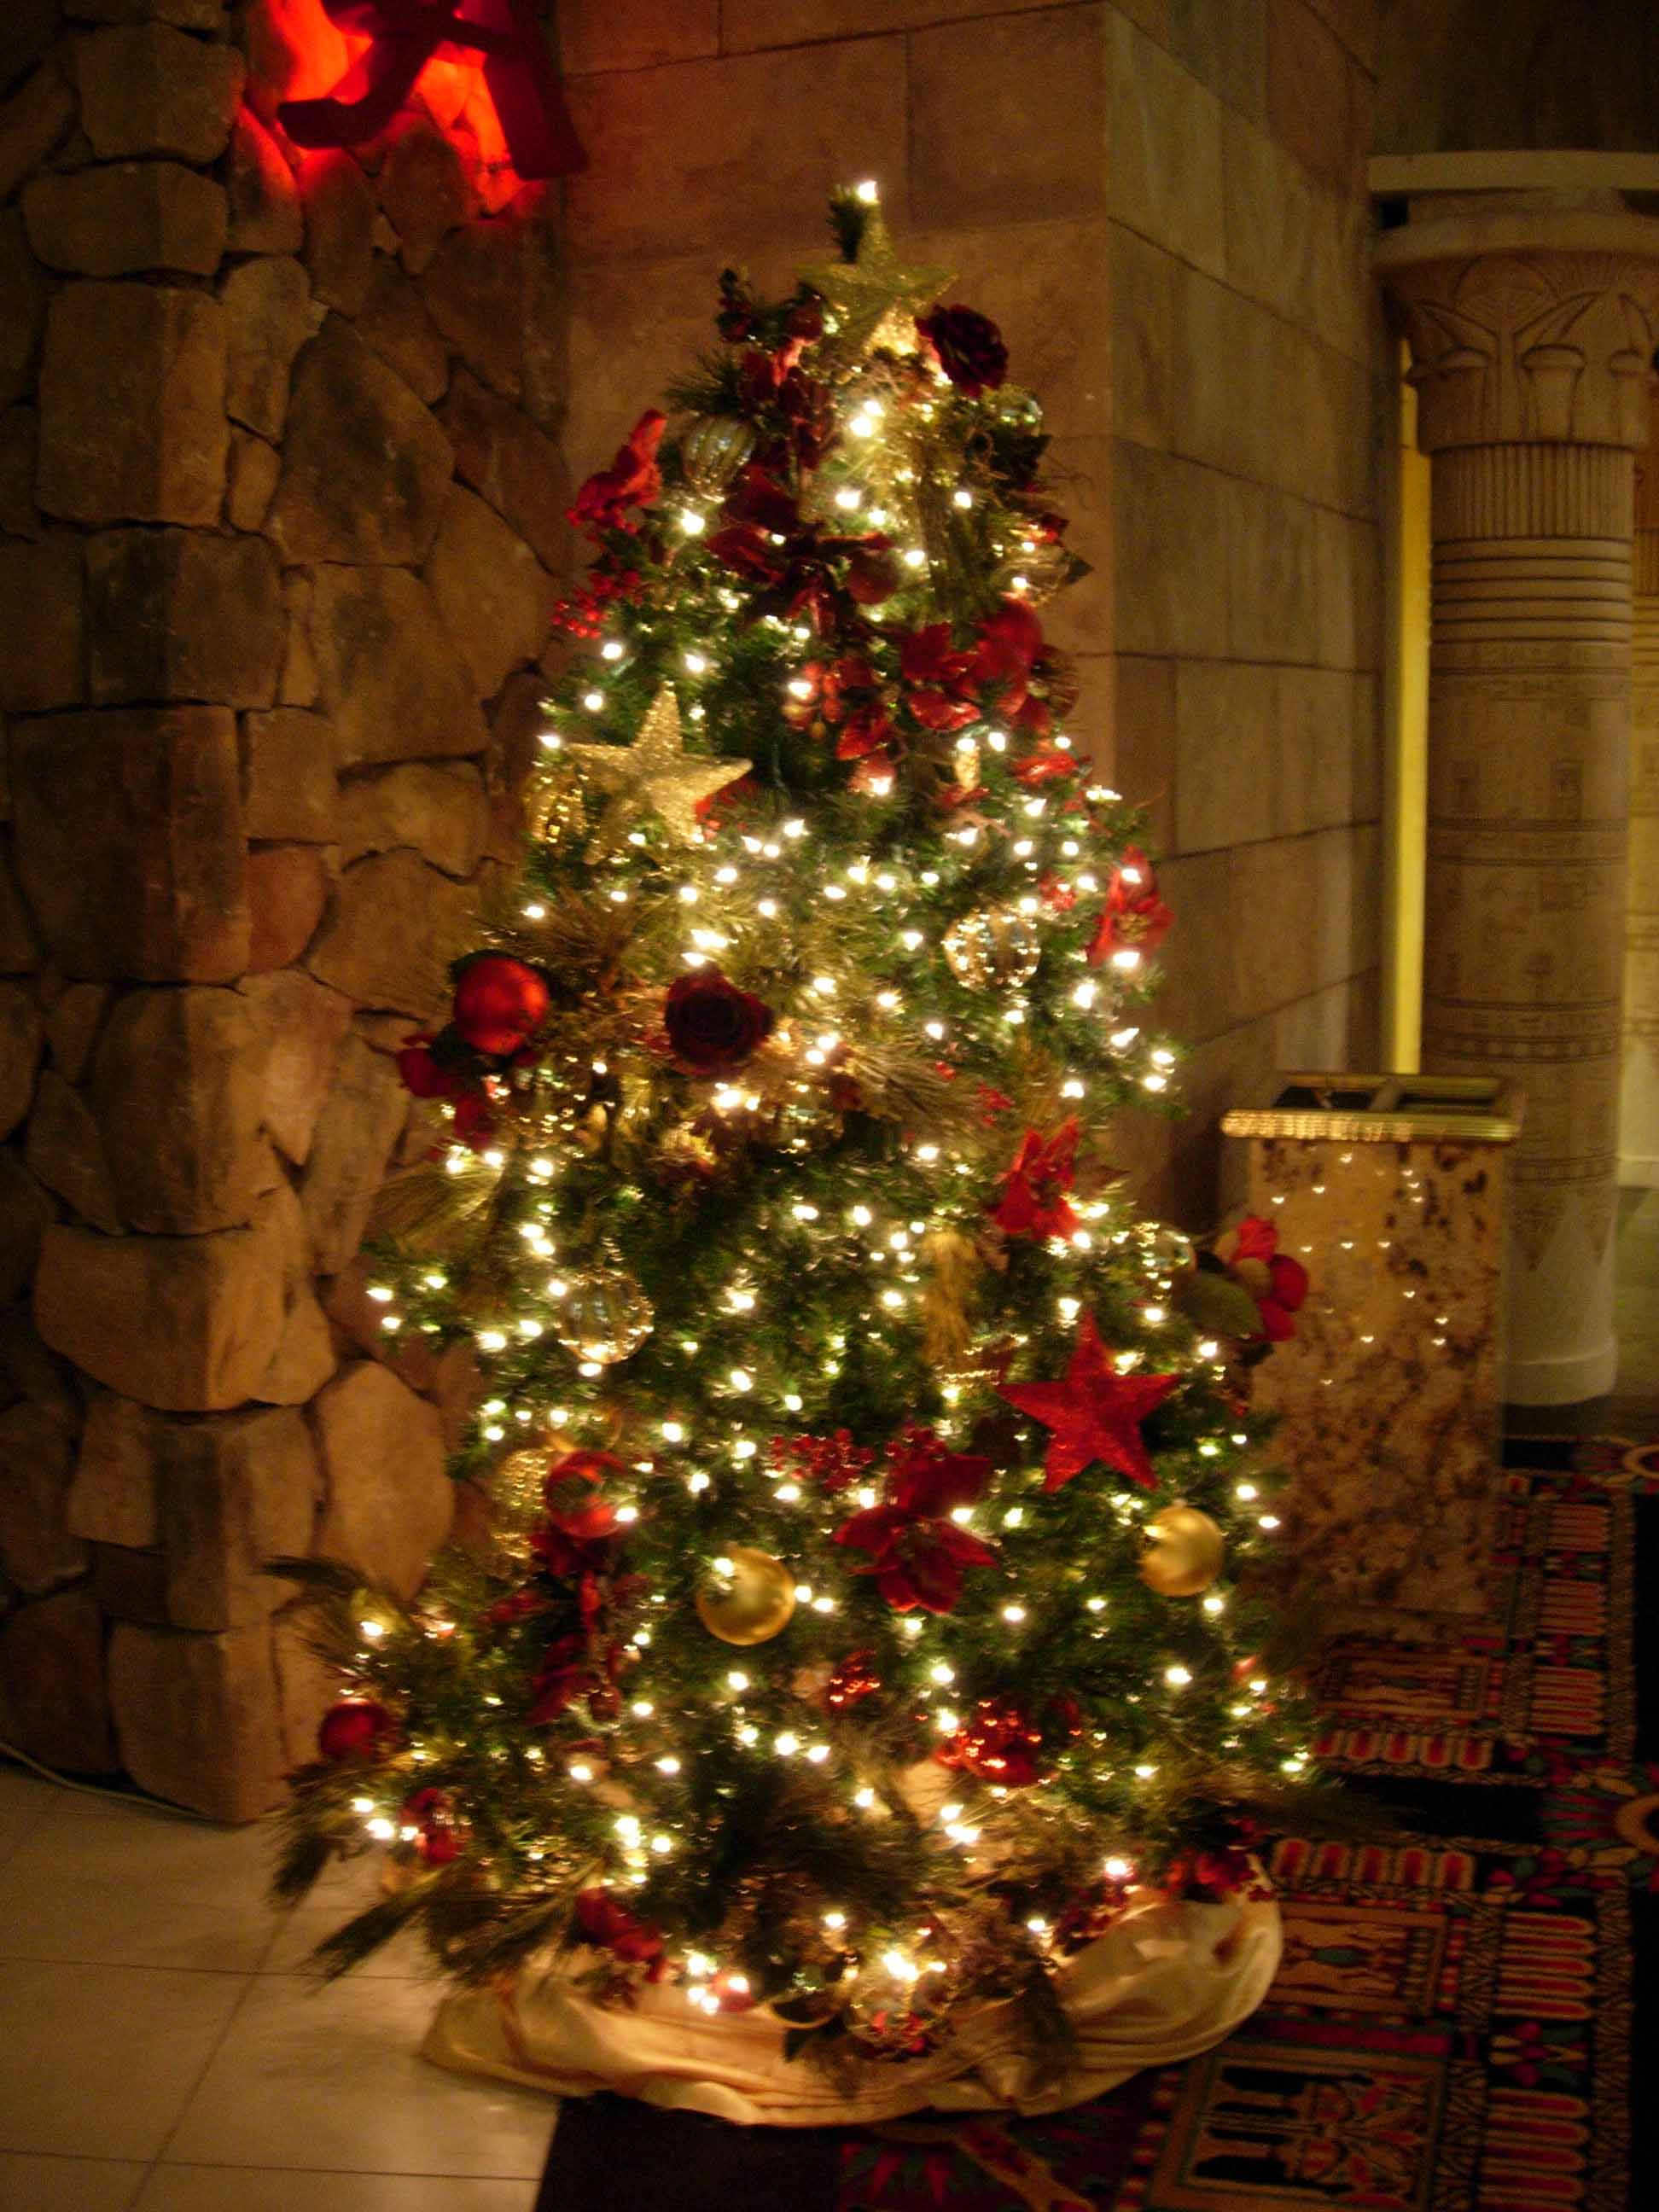 Fresh Christmas Tree Pics 01 Christmas Tree and Decorations Of Delightful 50 Pictures Christmas Tree and Decorations